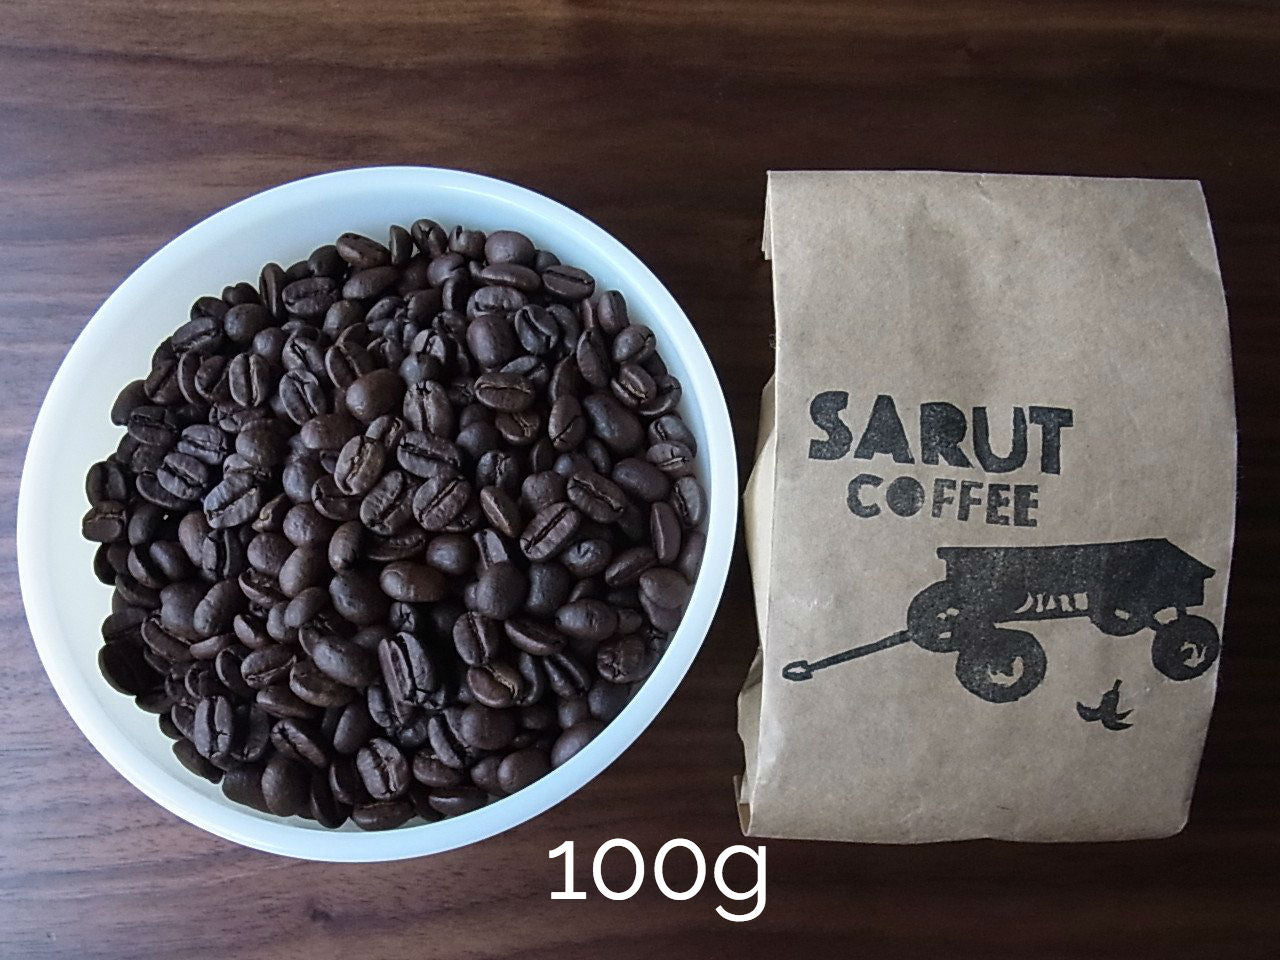 SARUT COFFEE Original Blend 2